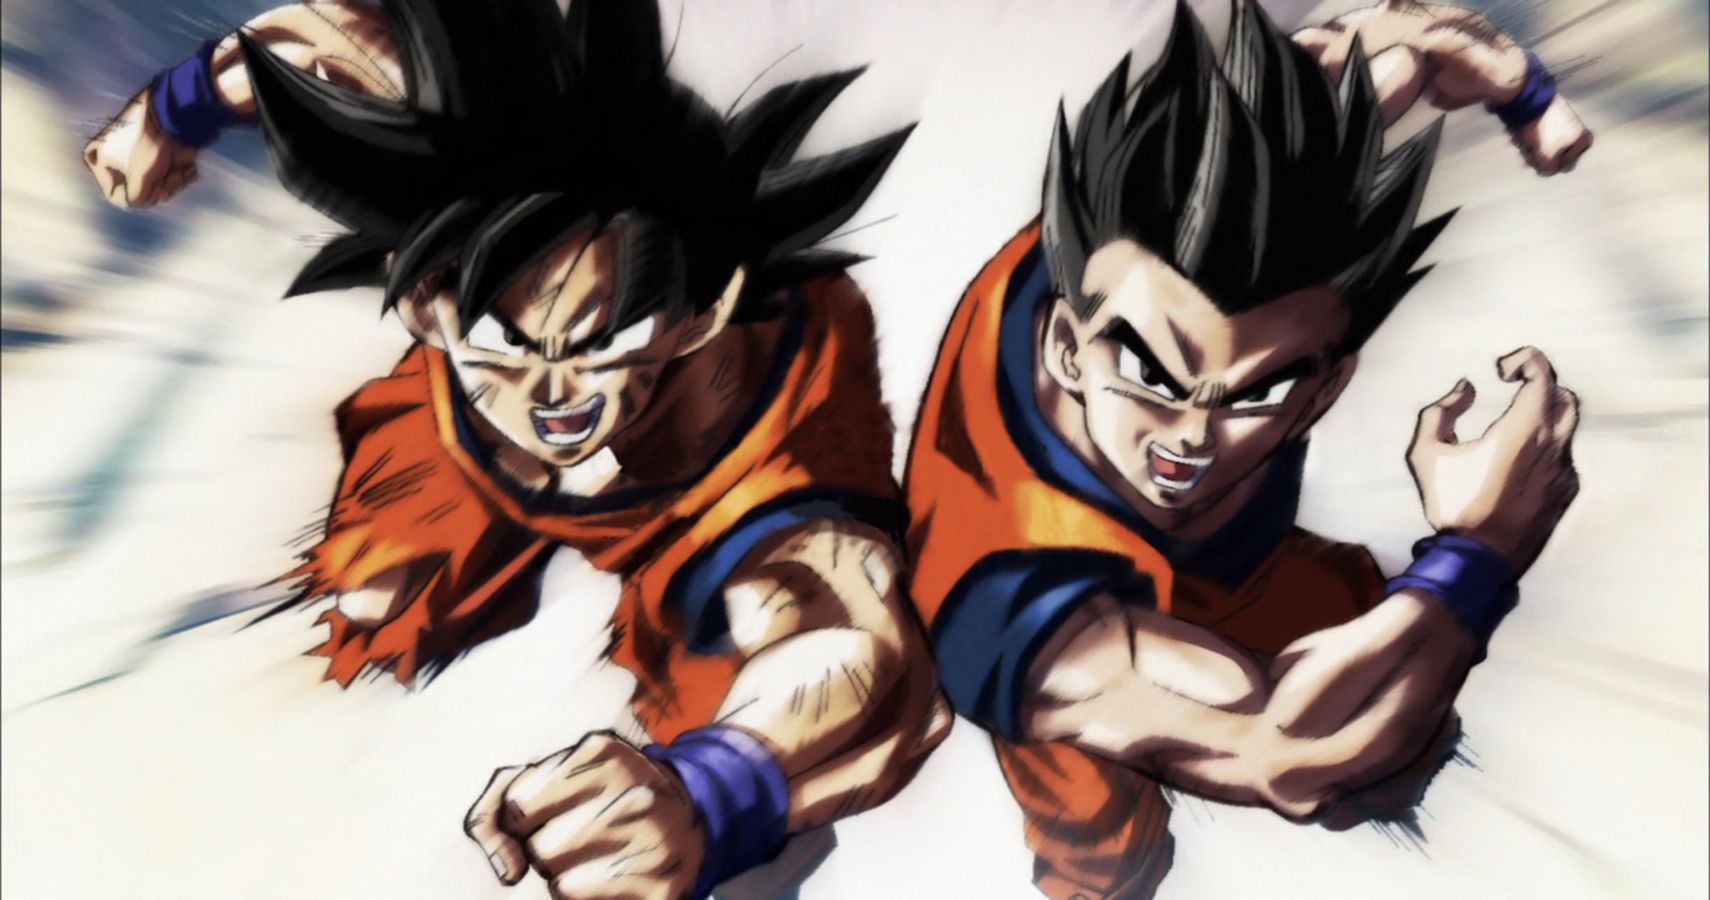 Dragon Ball: 5 Things Gohan Can Do That Goku Can't (& 5 Goku Can That Gohan Can't)